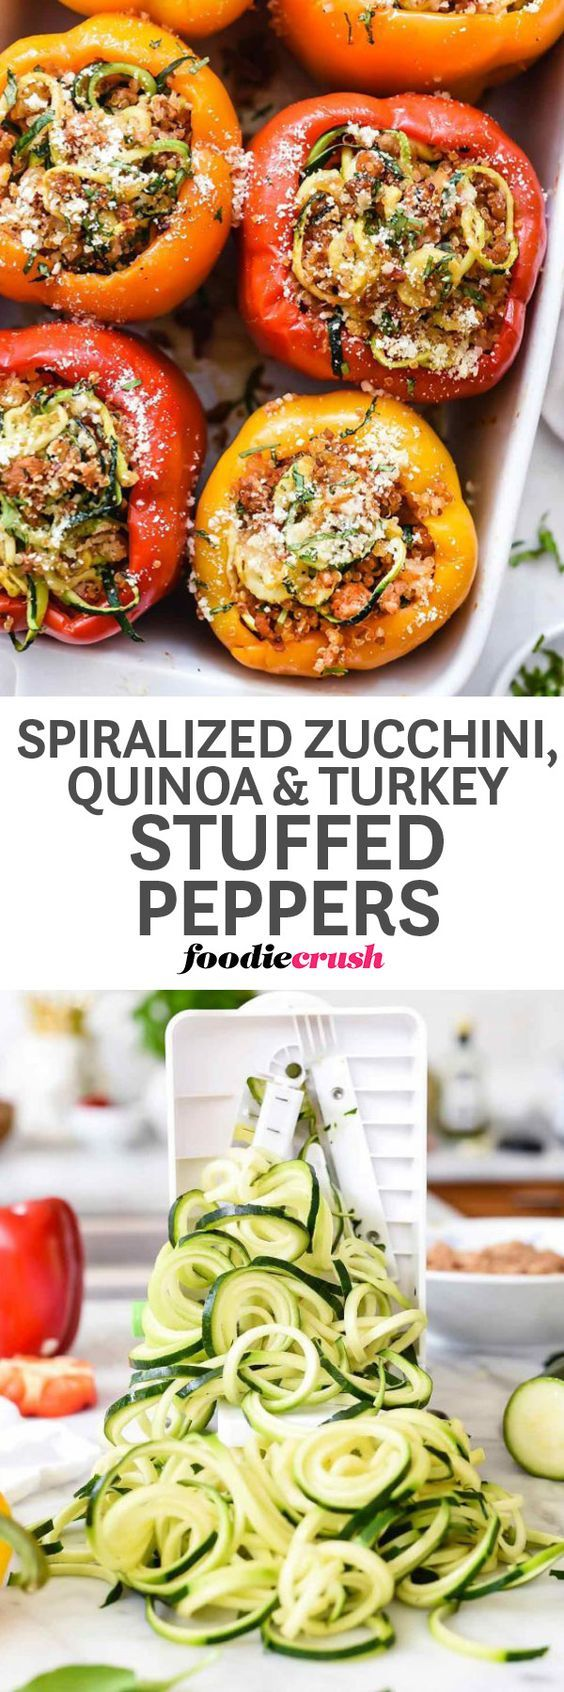 These rainbow stuffed peppers are filled with healthy ingredients like spiralized zucchini, protein-packed quinoa, and turkey sausage for a fast all-in-one dinner the whole family will love. | foodiecrush.com #peppers #dinner #quinoa